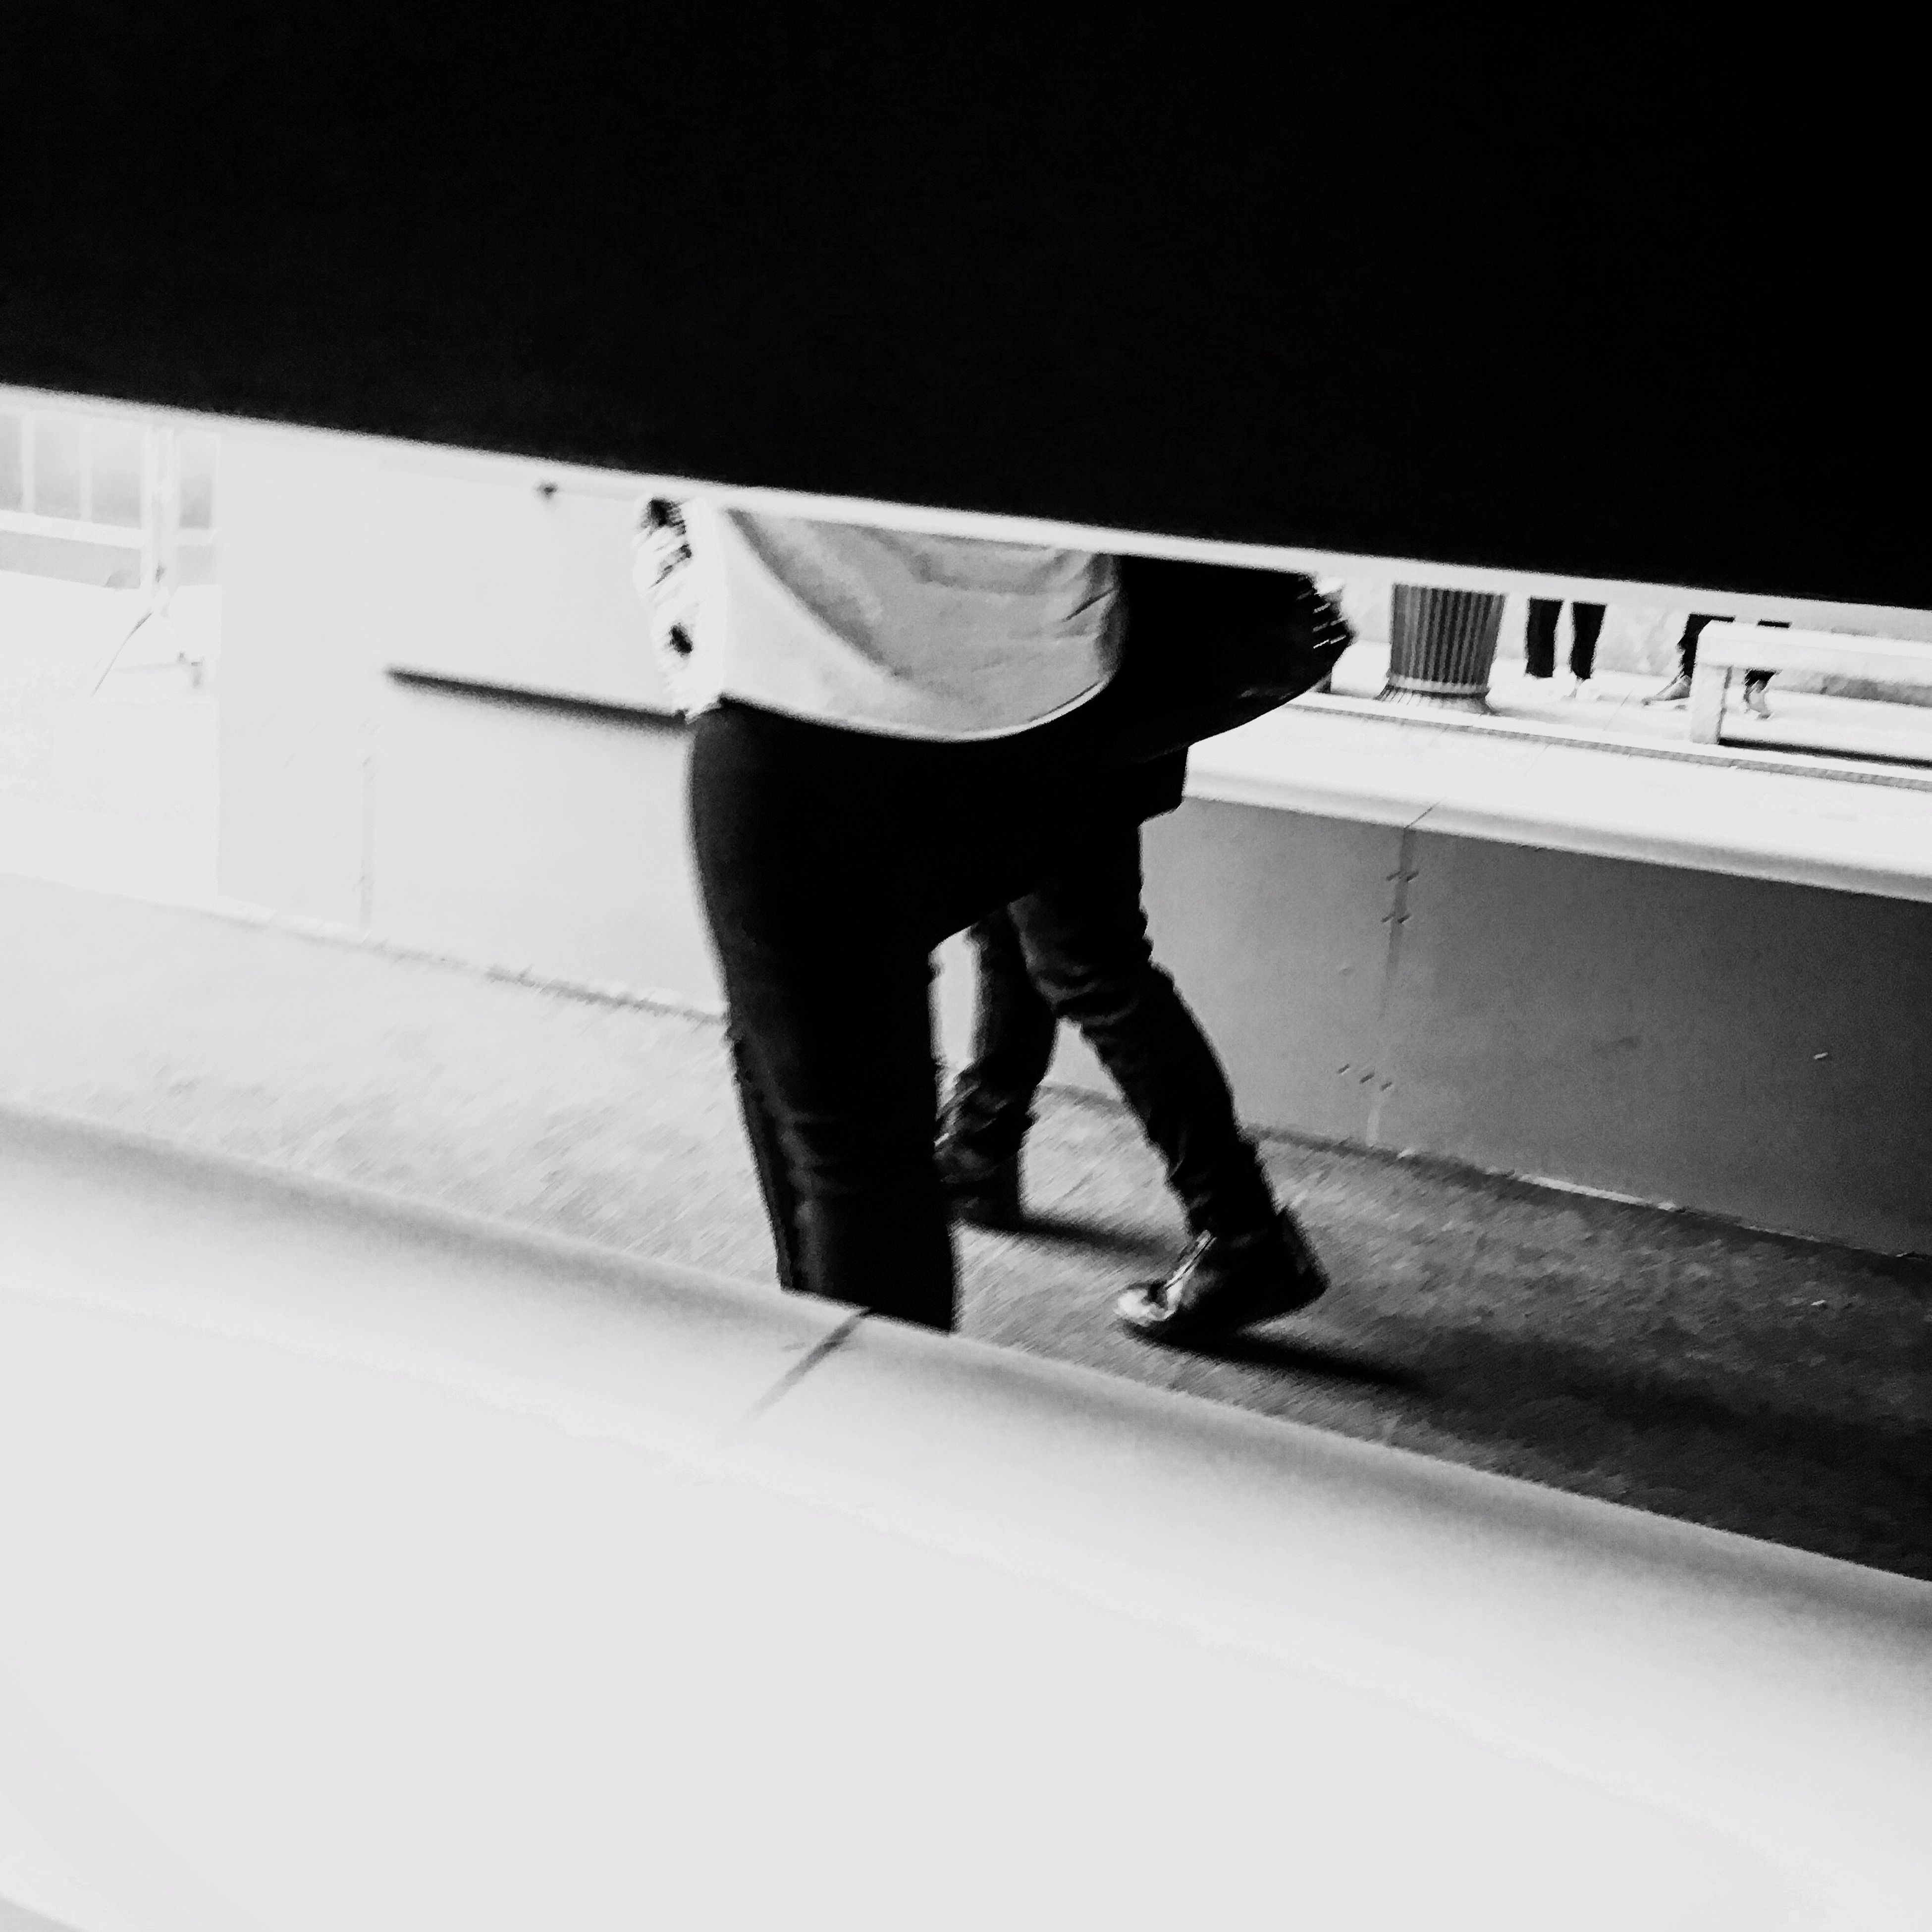 men, walking, lifestyles, low section, full length, standing, person, rear view, indoors, shadow, on the move, leisure activity, casual clothing, street, steps, shoe, sunlight